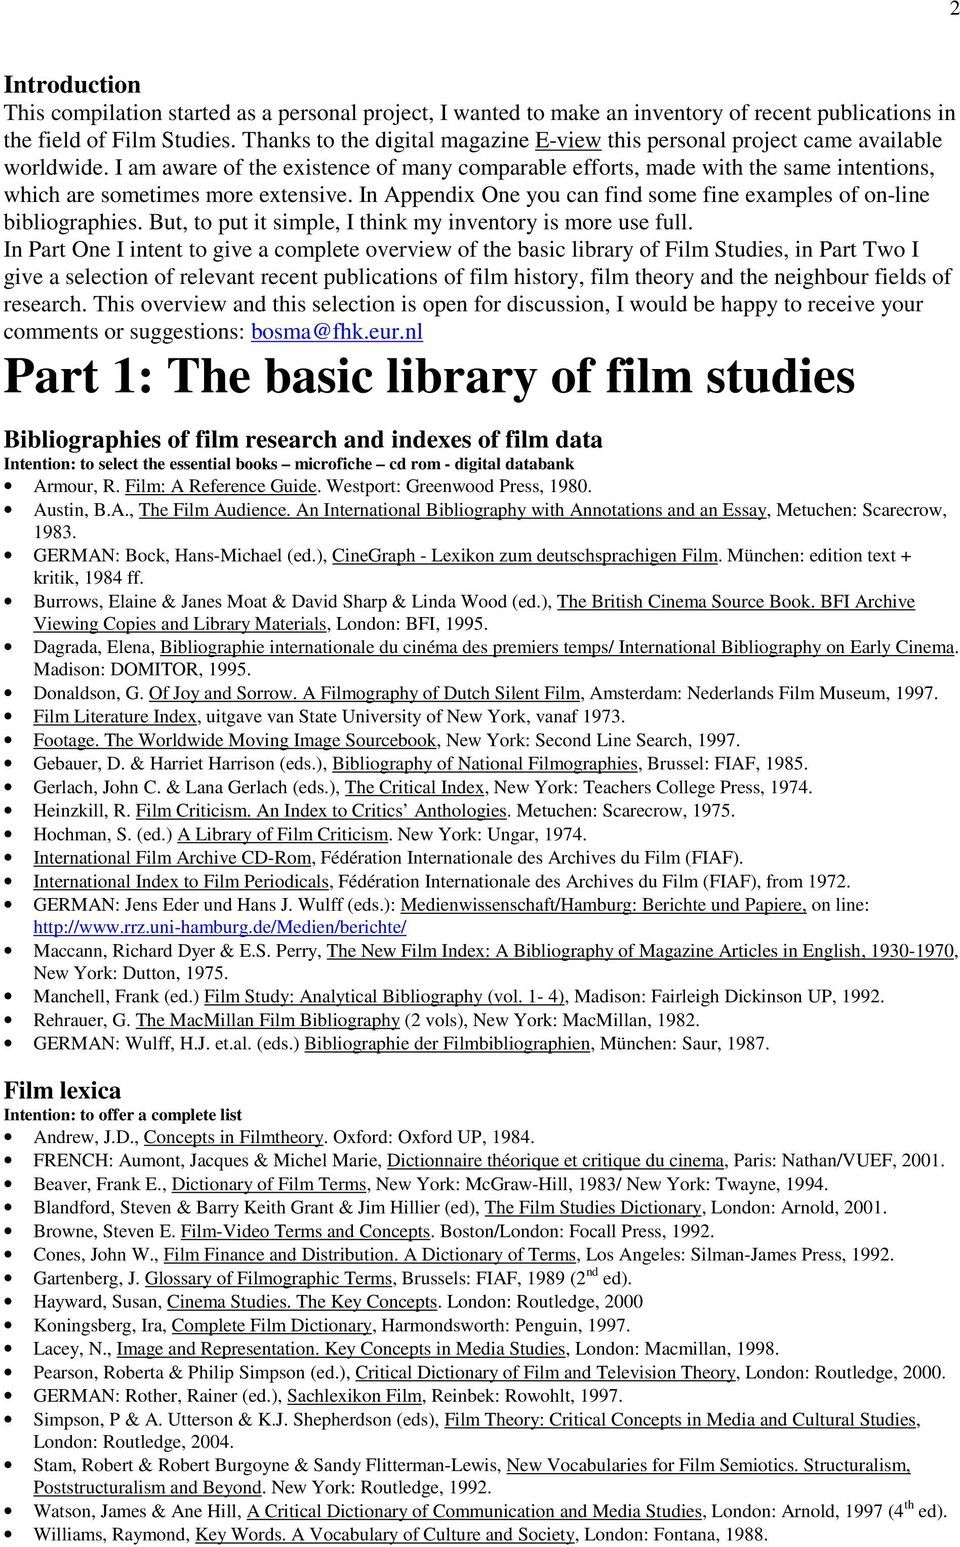 I am aware of the existence of many comparable efforts, made with the same intentions, which are sometimes more extensive. In Appendix One you can find some fine examples of on-line bibliographies.